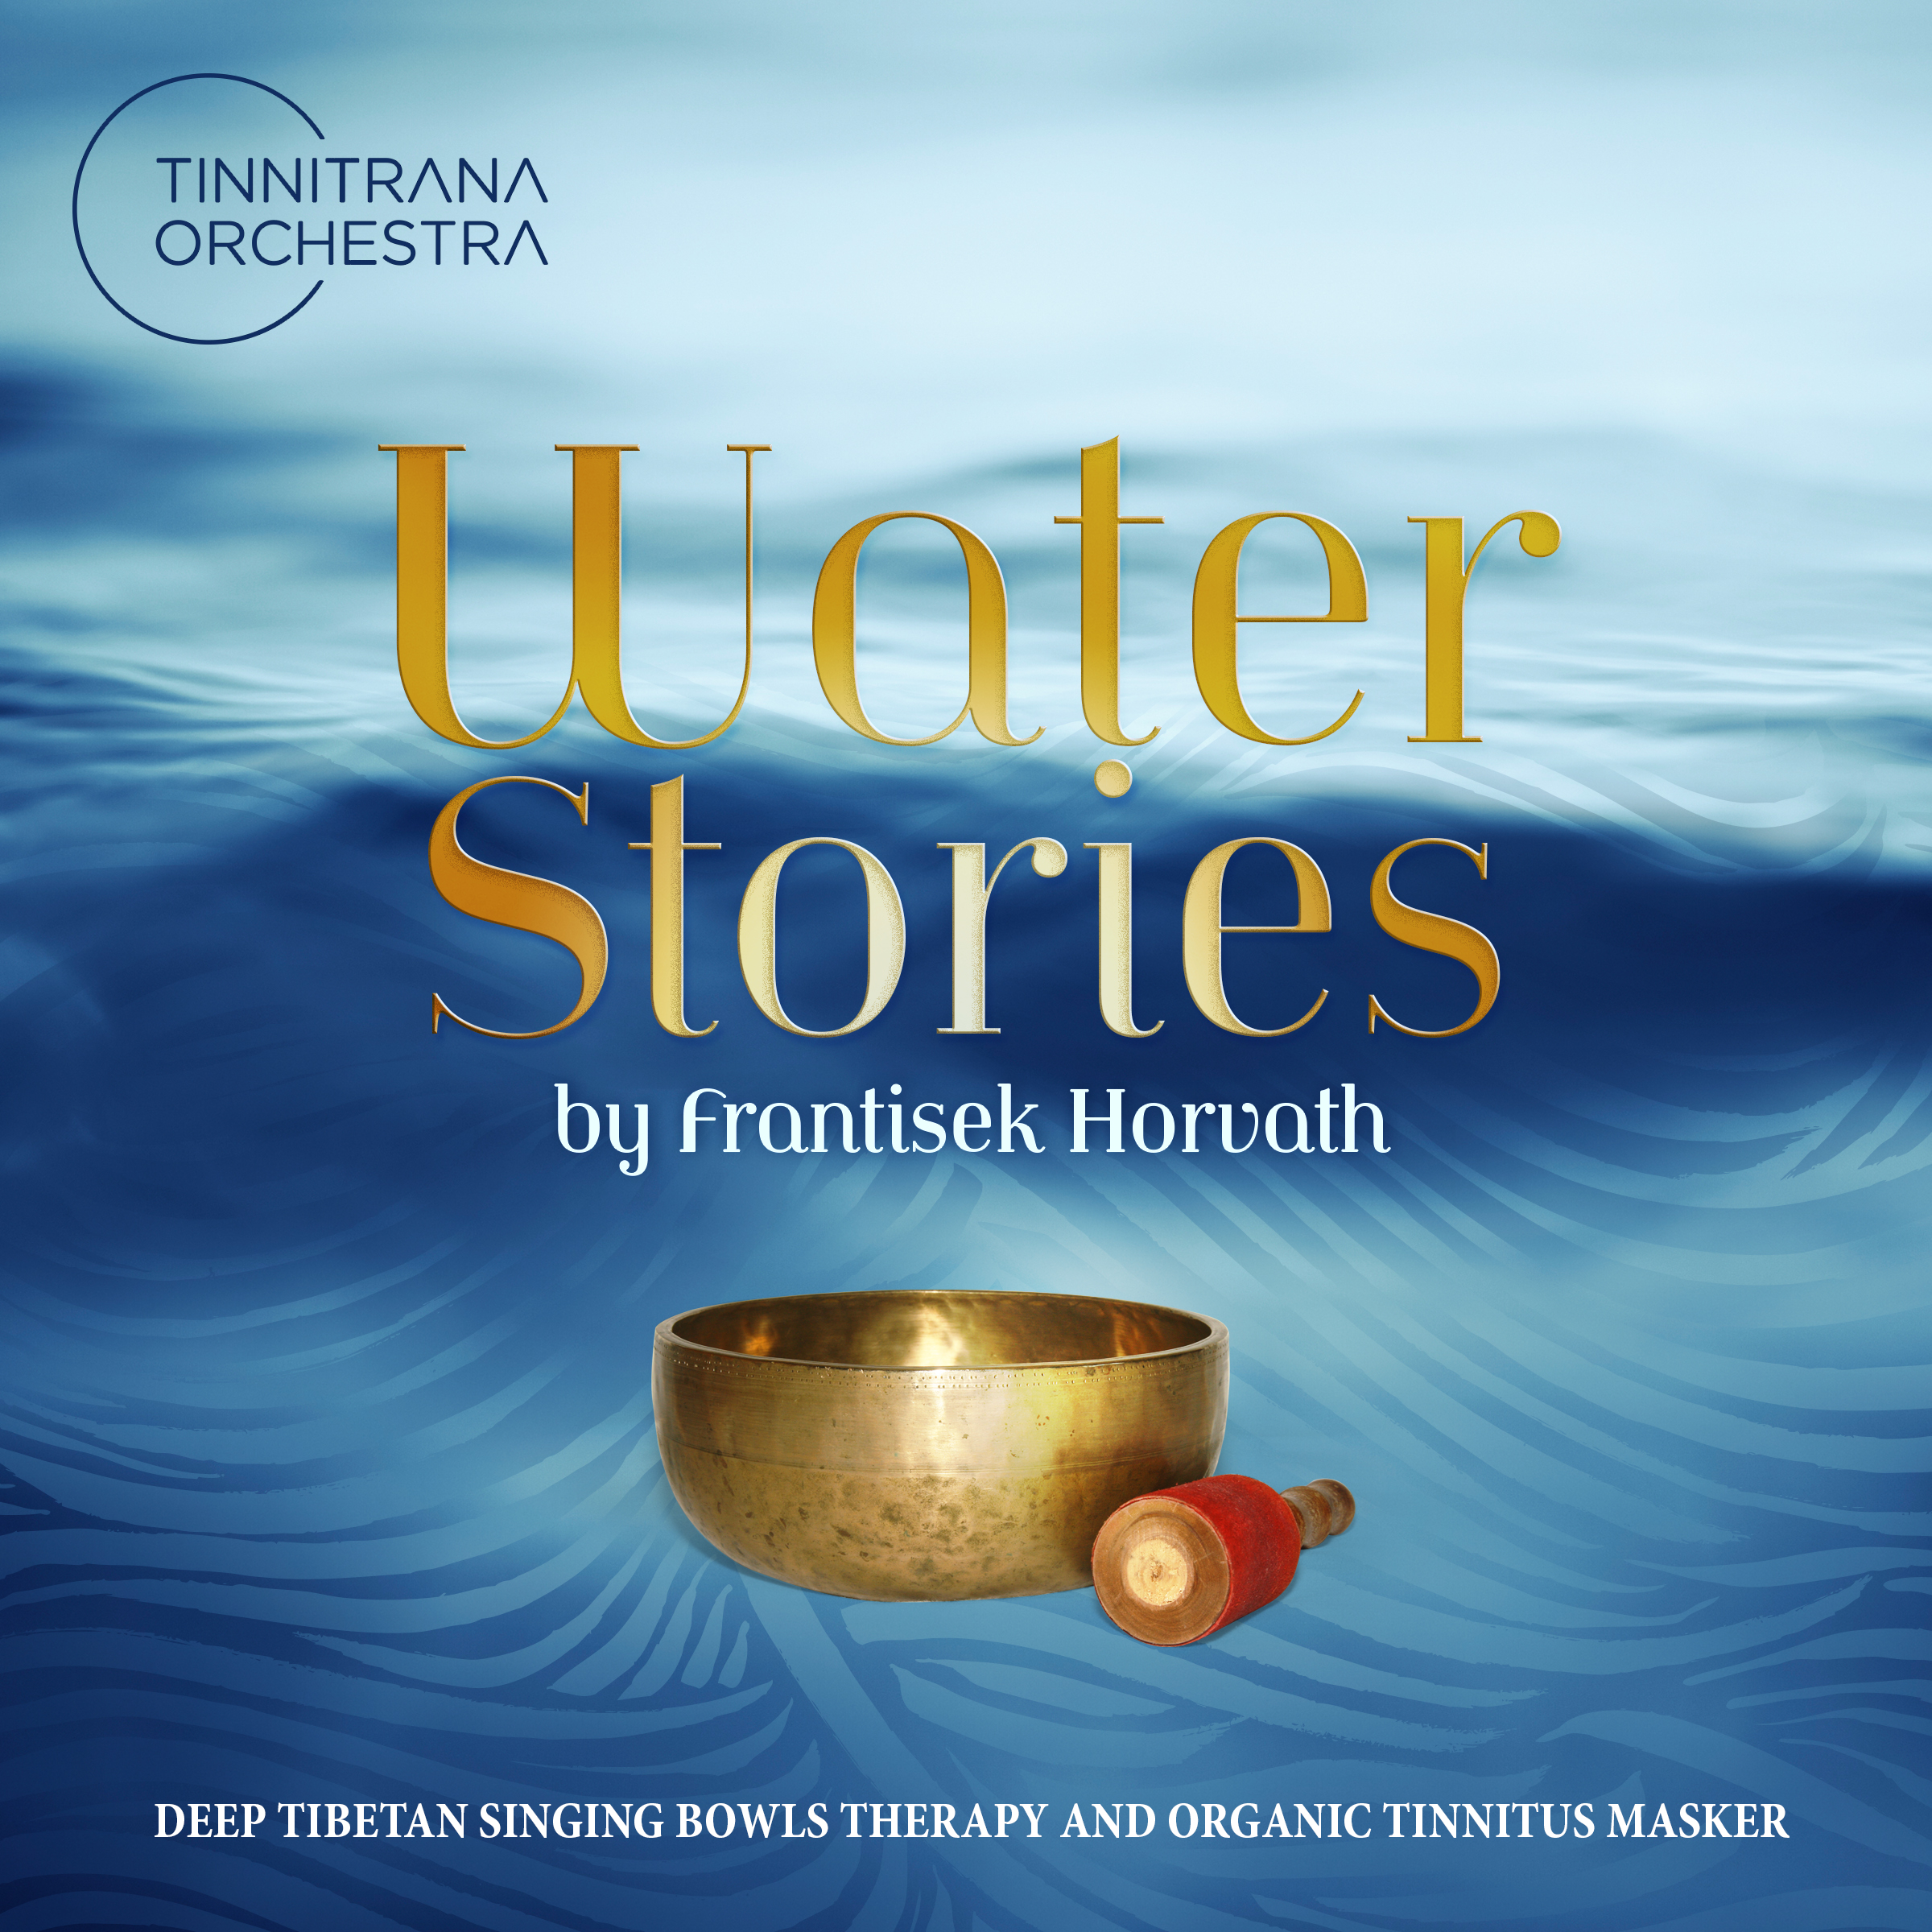 Tinnitrana Orchestra - Water Stories